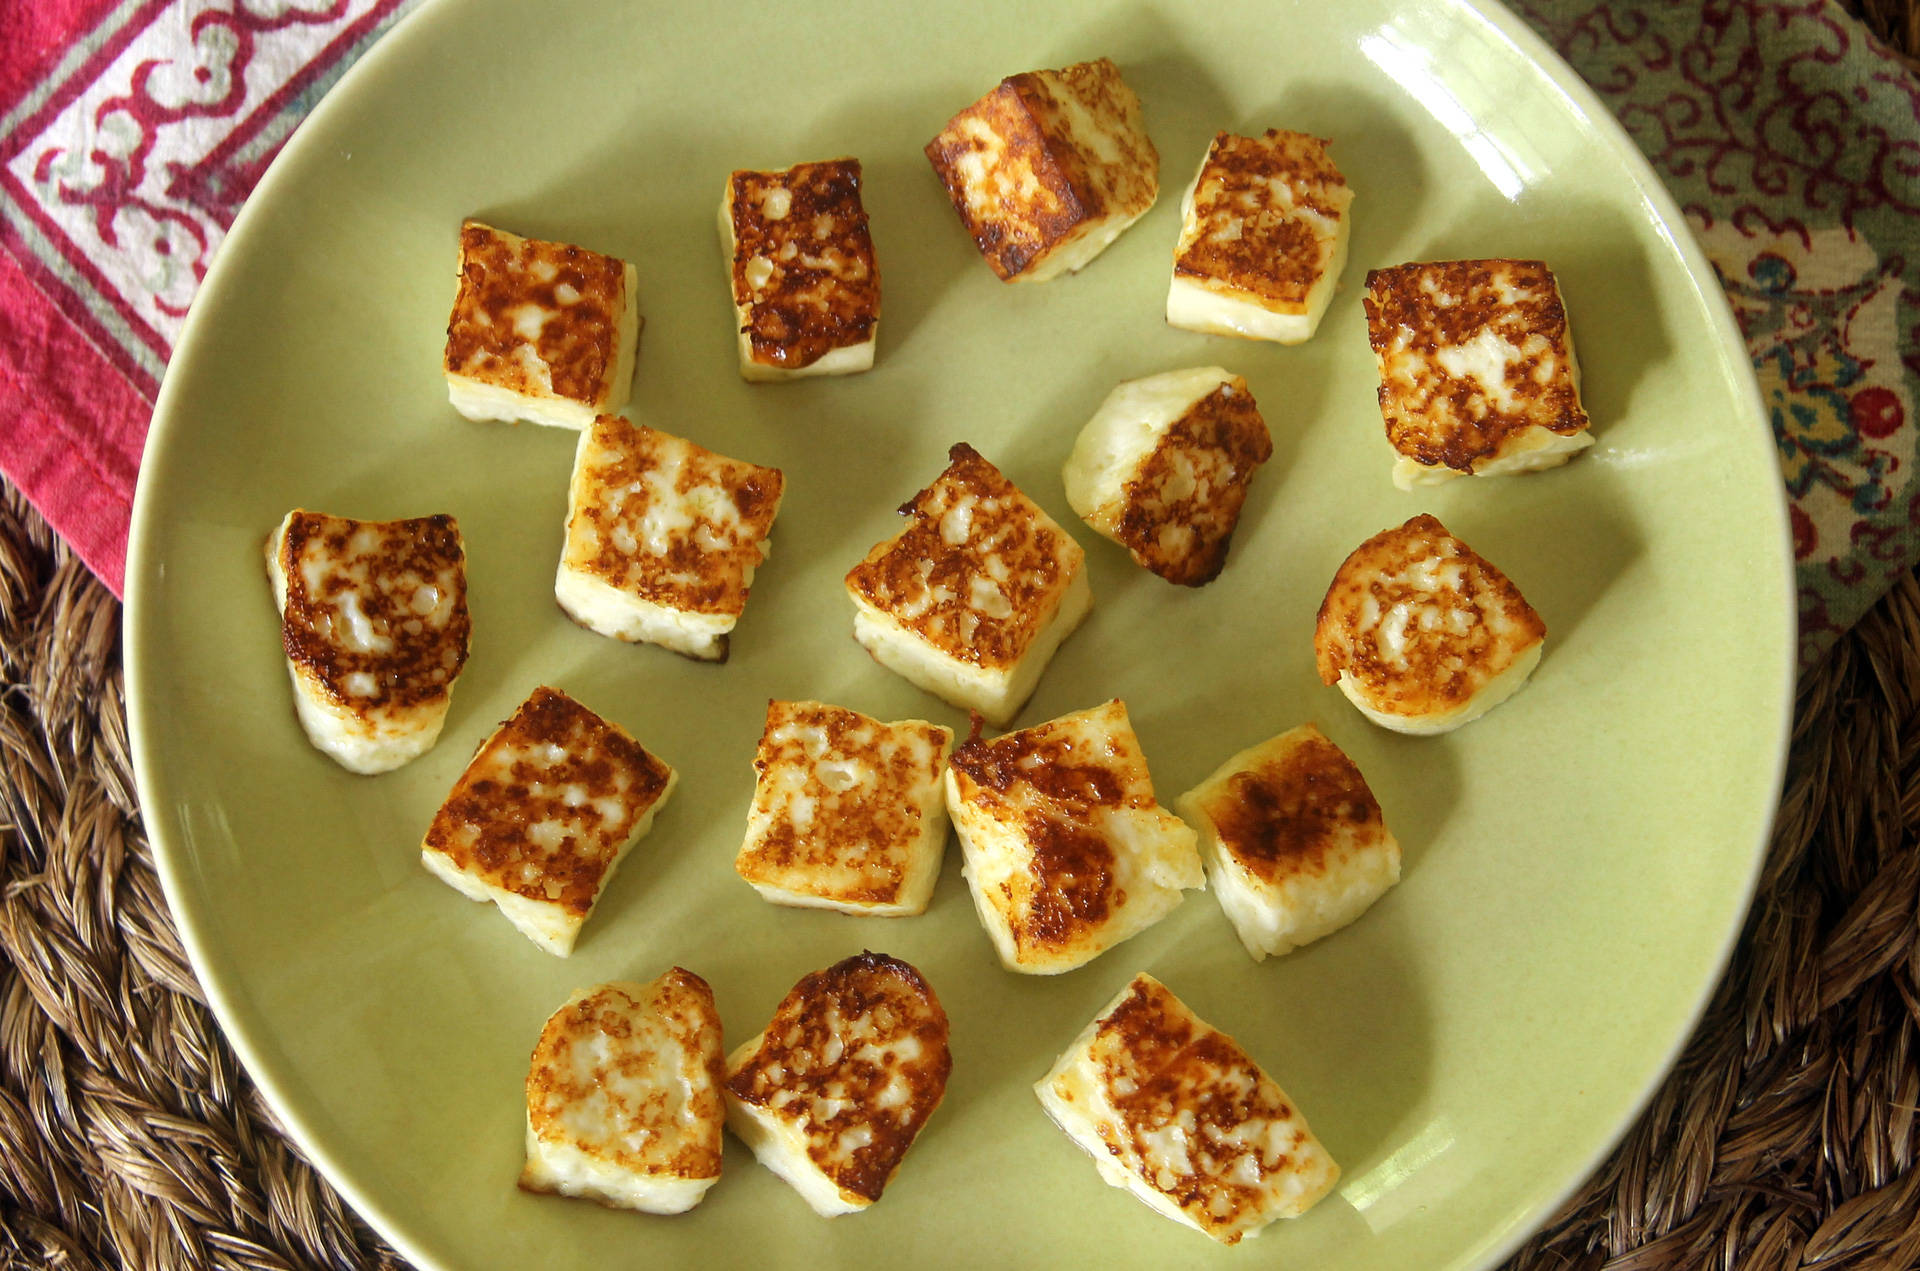 Homemade paneer, seared in olive oil. Kate Williams